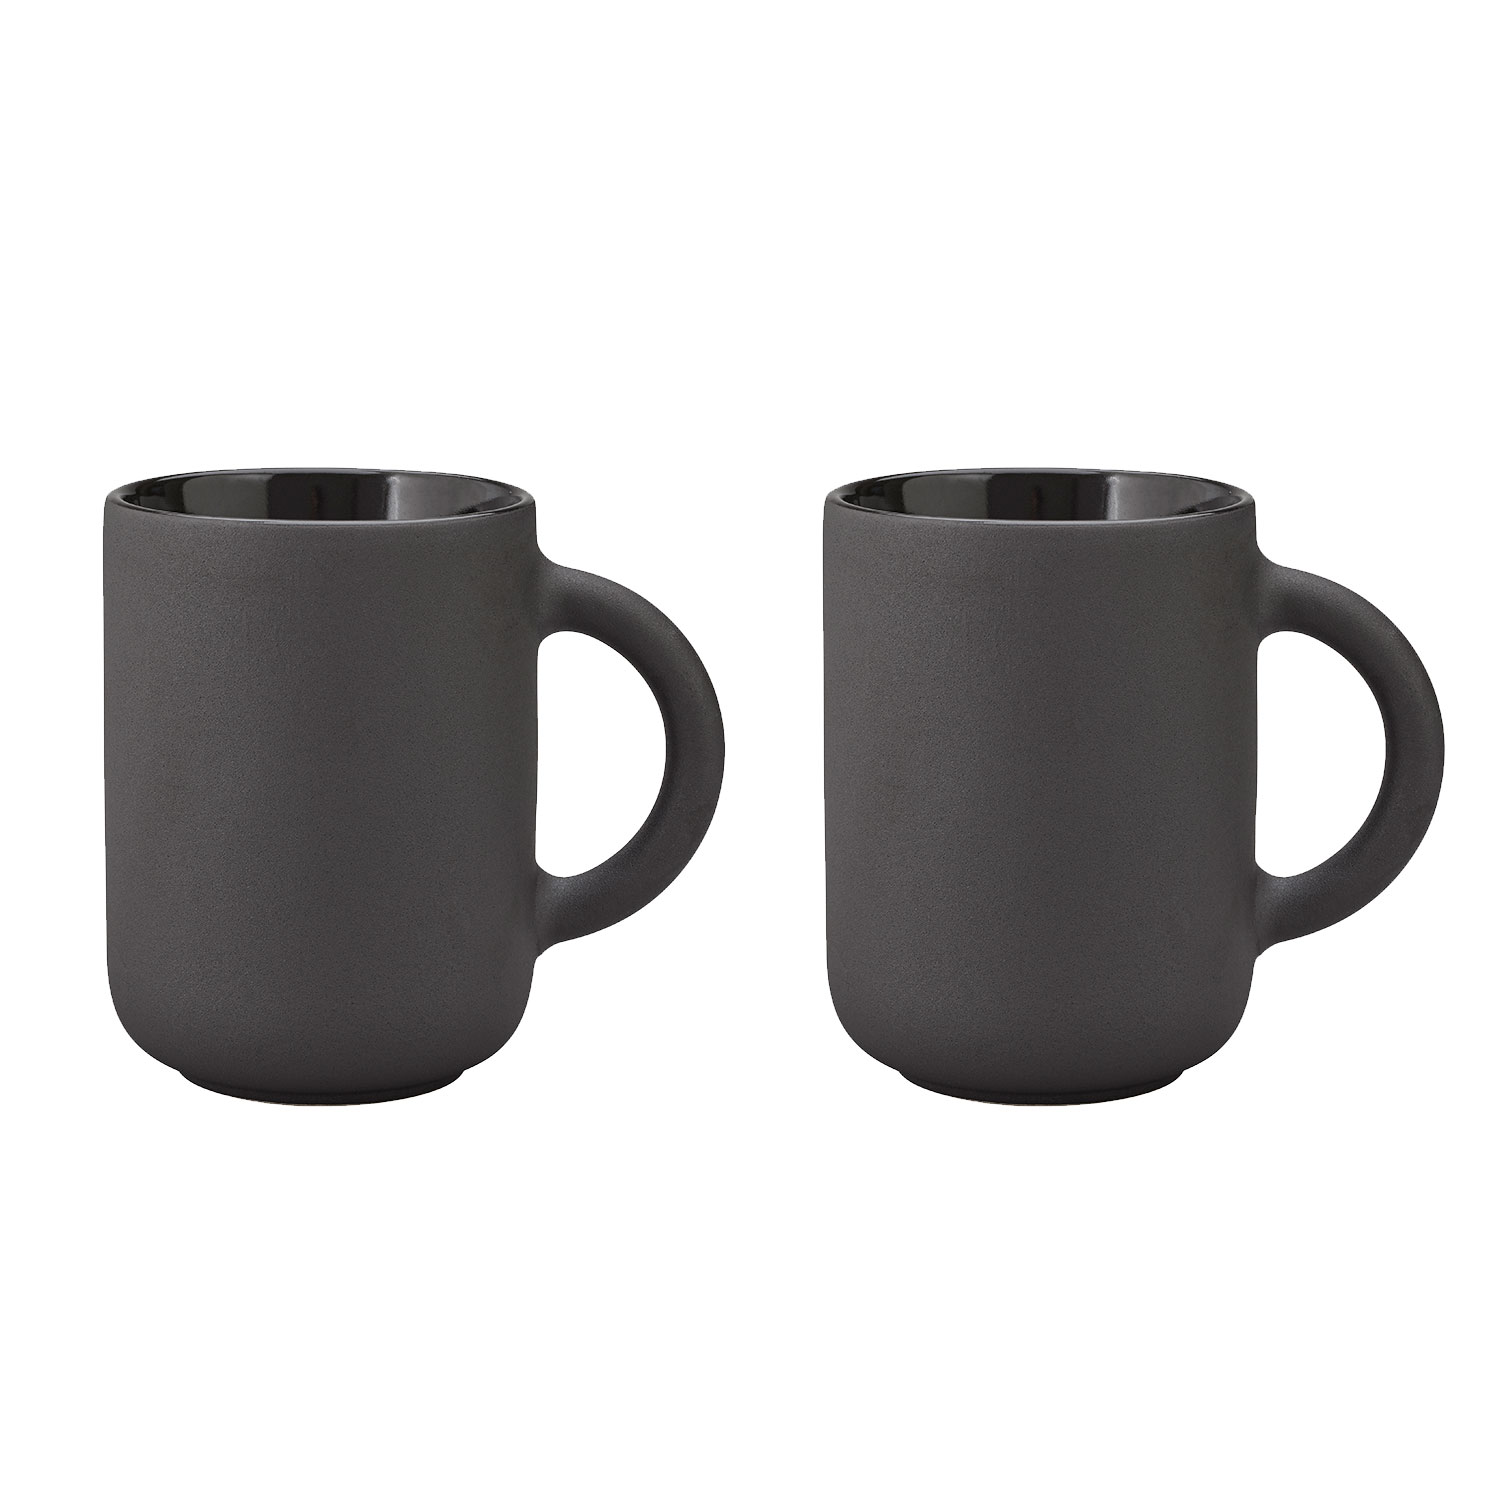 Theo mugg 35 cl, 2-pack